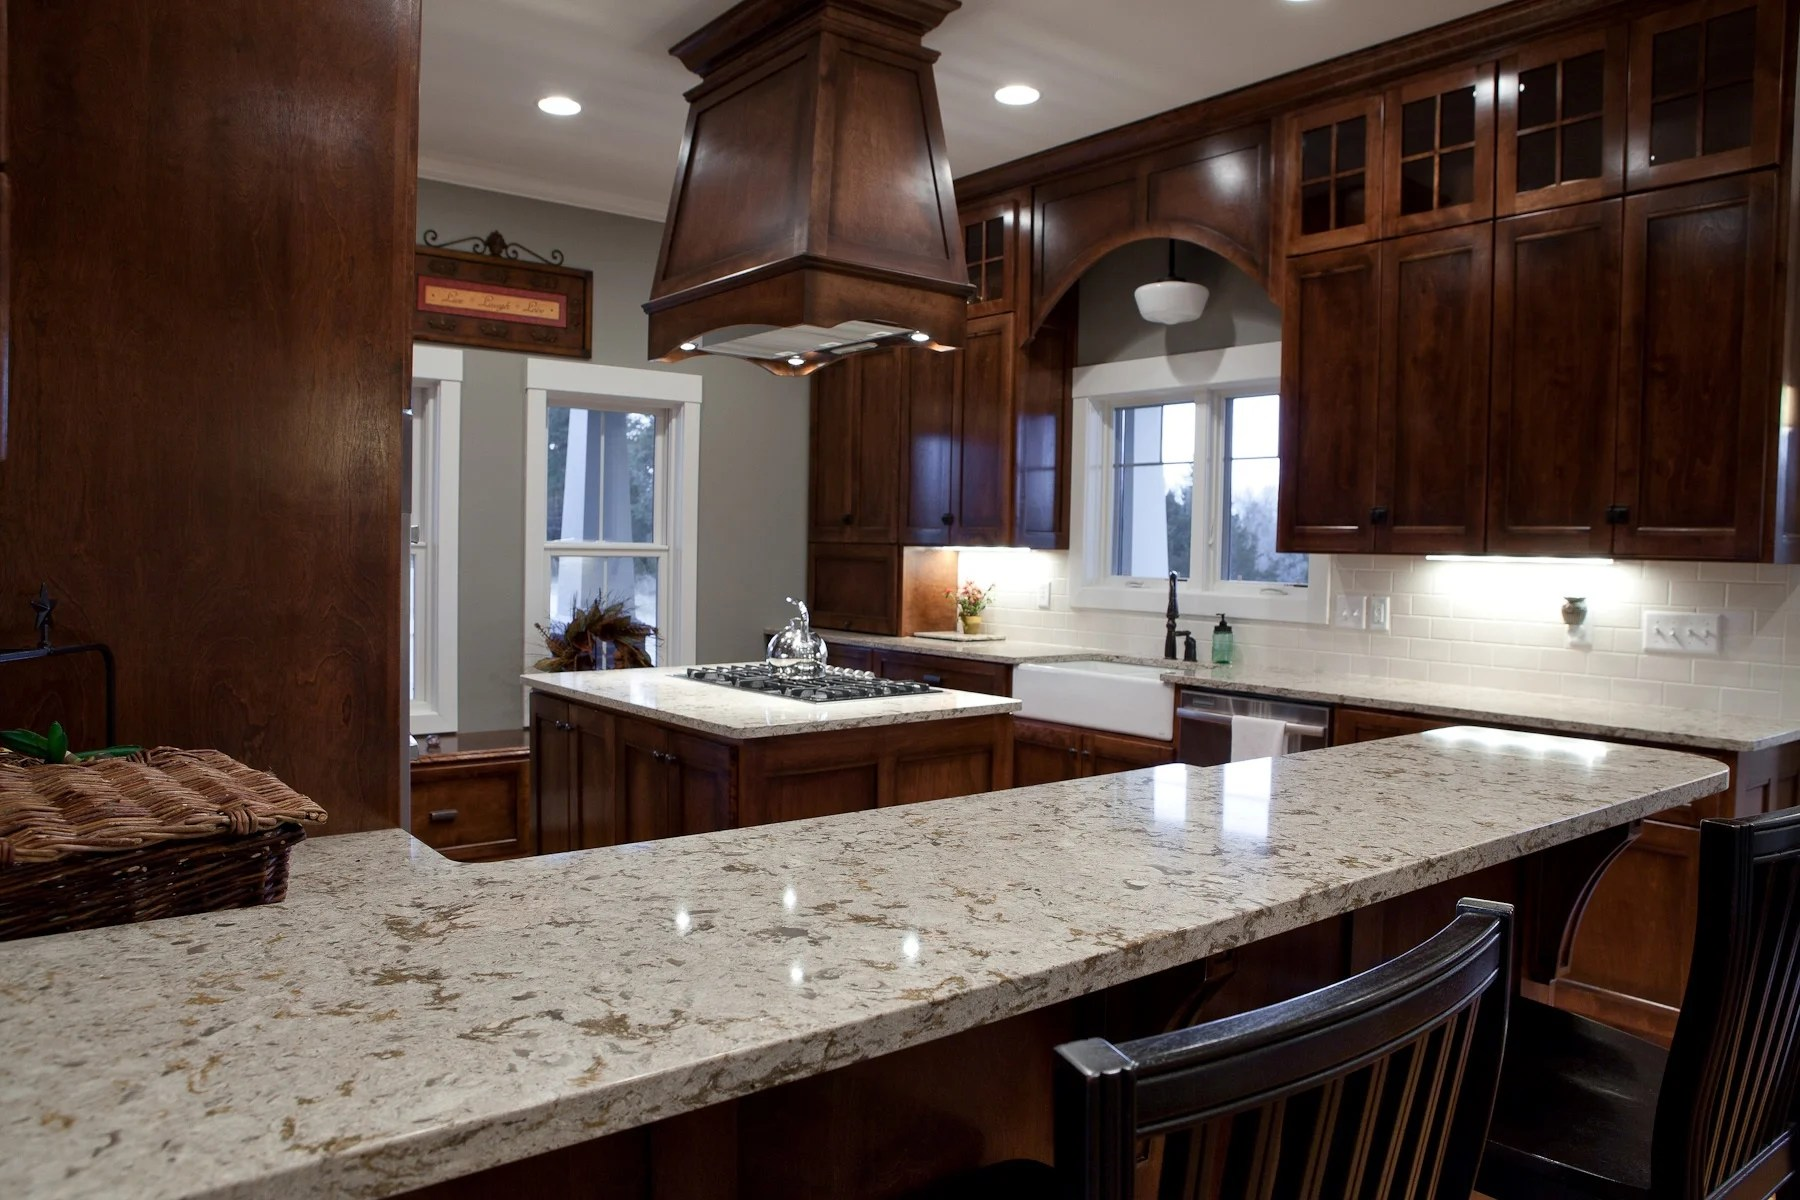 kitchen counter options where to buy used cabinets 18 countertop and ideas for 2019